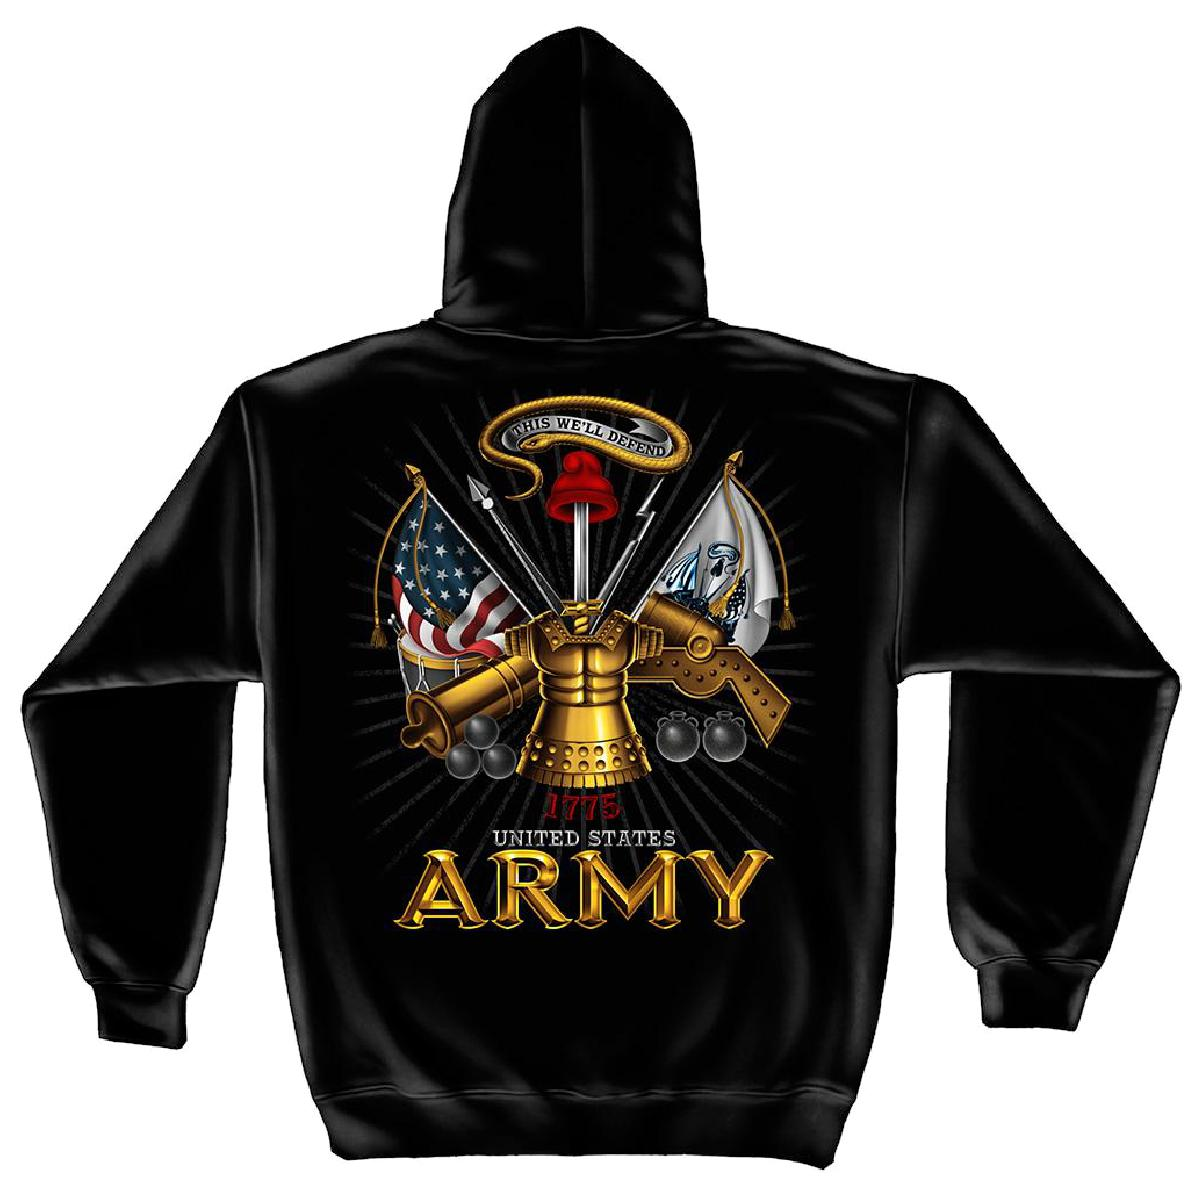 United States Army Antique Armor Hooded Sweatshirt by , Black, 3XL